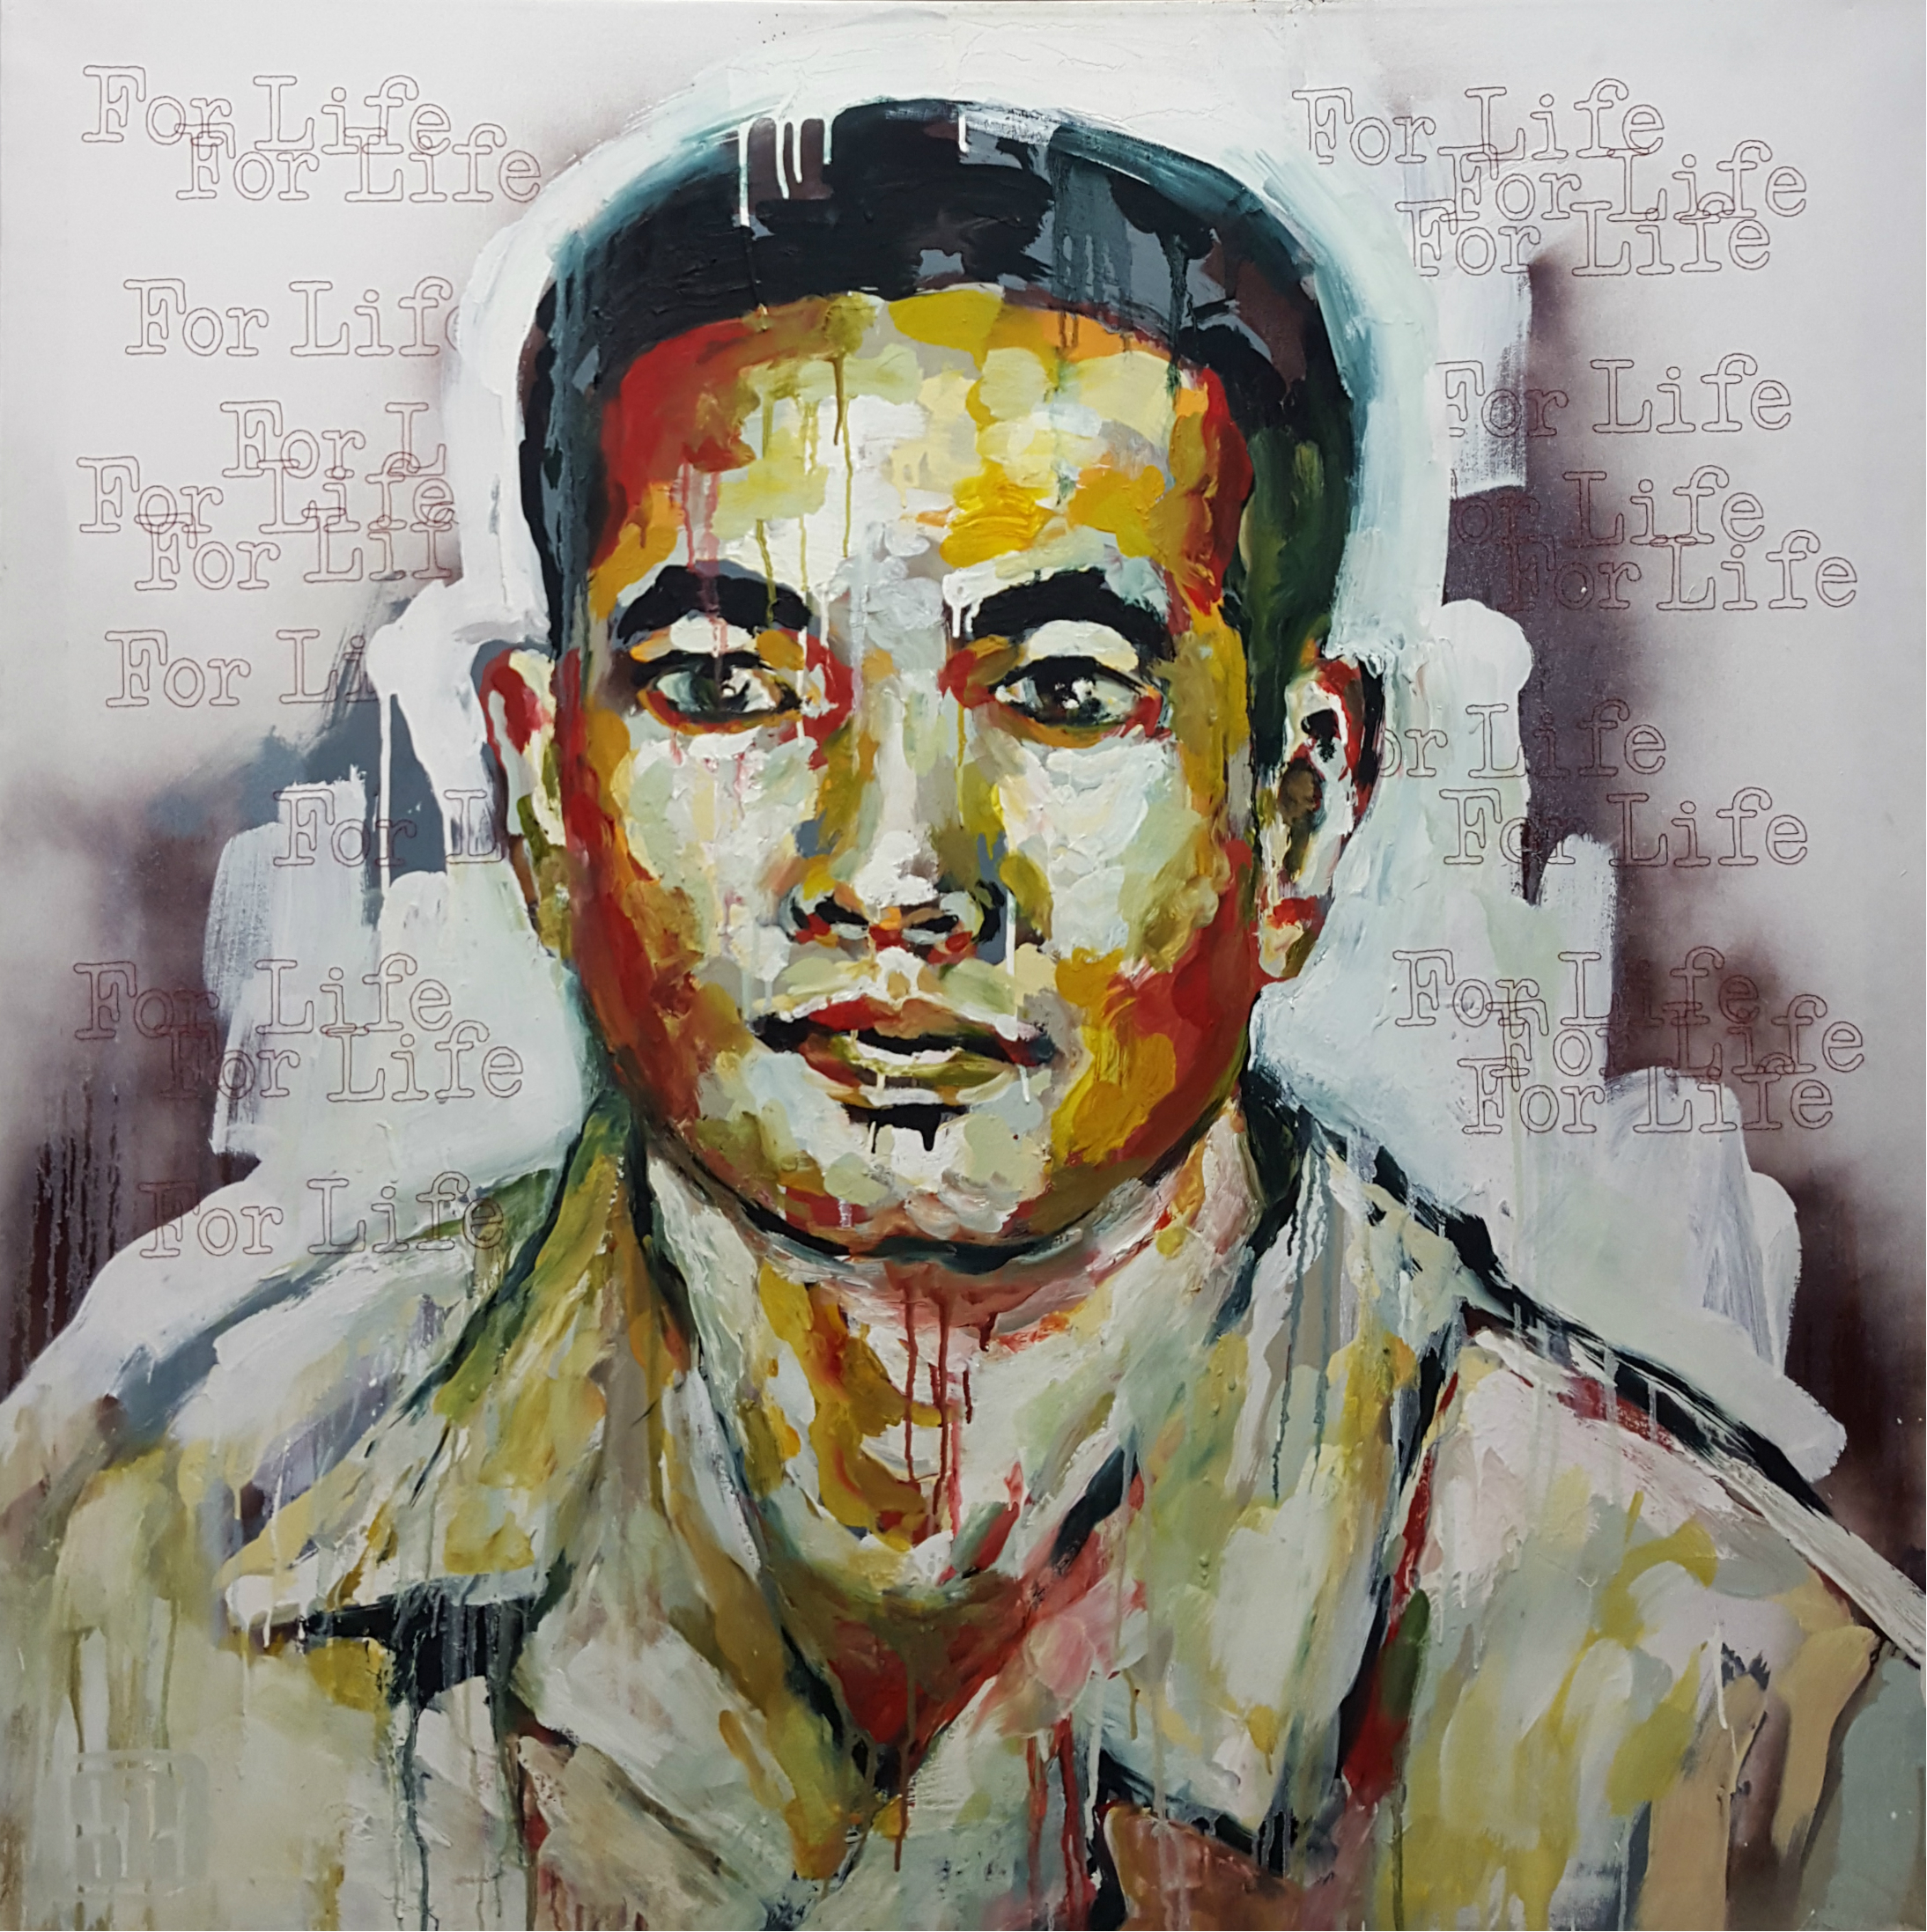 """A Prayer for Anh Đức  , 2010, Oil, acrylic and hand embroidery on canvas, 48 x 48""""   I recognize the gallant soldiers of past and present who have sacrificed their lives in battles for Freedom. From the South Vietnamese soldiers who stood their ground in honor of their people to those who have fought to defended their families, their beliefs and their nations. I honor the ones who have triumphed in their own personal wars.  This portrait is an homage to my brother-in-law, Anh Đức, who following in the footsteps of his father, a general in the South Vietnamese army, spent a great deal of his life as a soldier at war. His latest tour in Afghanistan held our family in a lasting plea for his return home. Serving as a meditation, the words For Life are stitched repetitively as a shroud for him in this visual prayer. Rhythmically breathing in as I puncture the canvas and breathing out as I pull the thread, I ask for Duc's protection and commit to full faith that God heeds the cry of the children."""